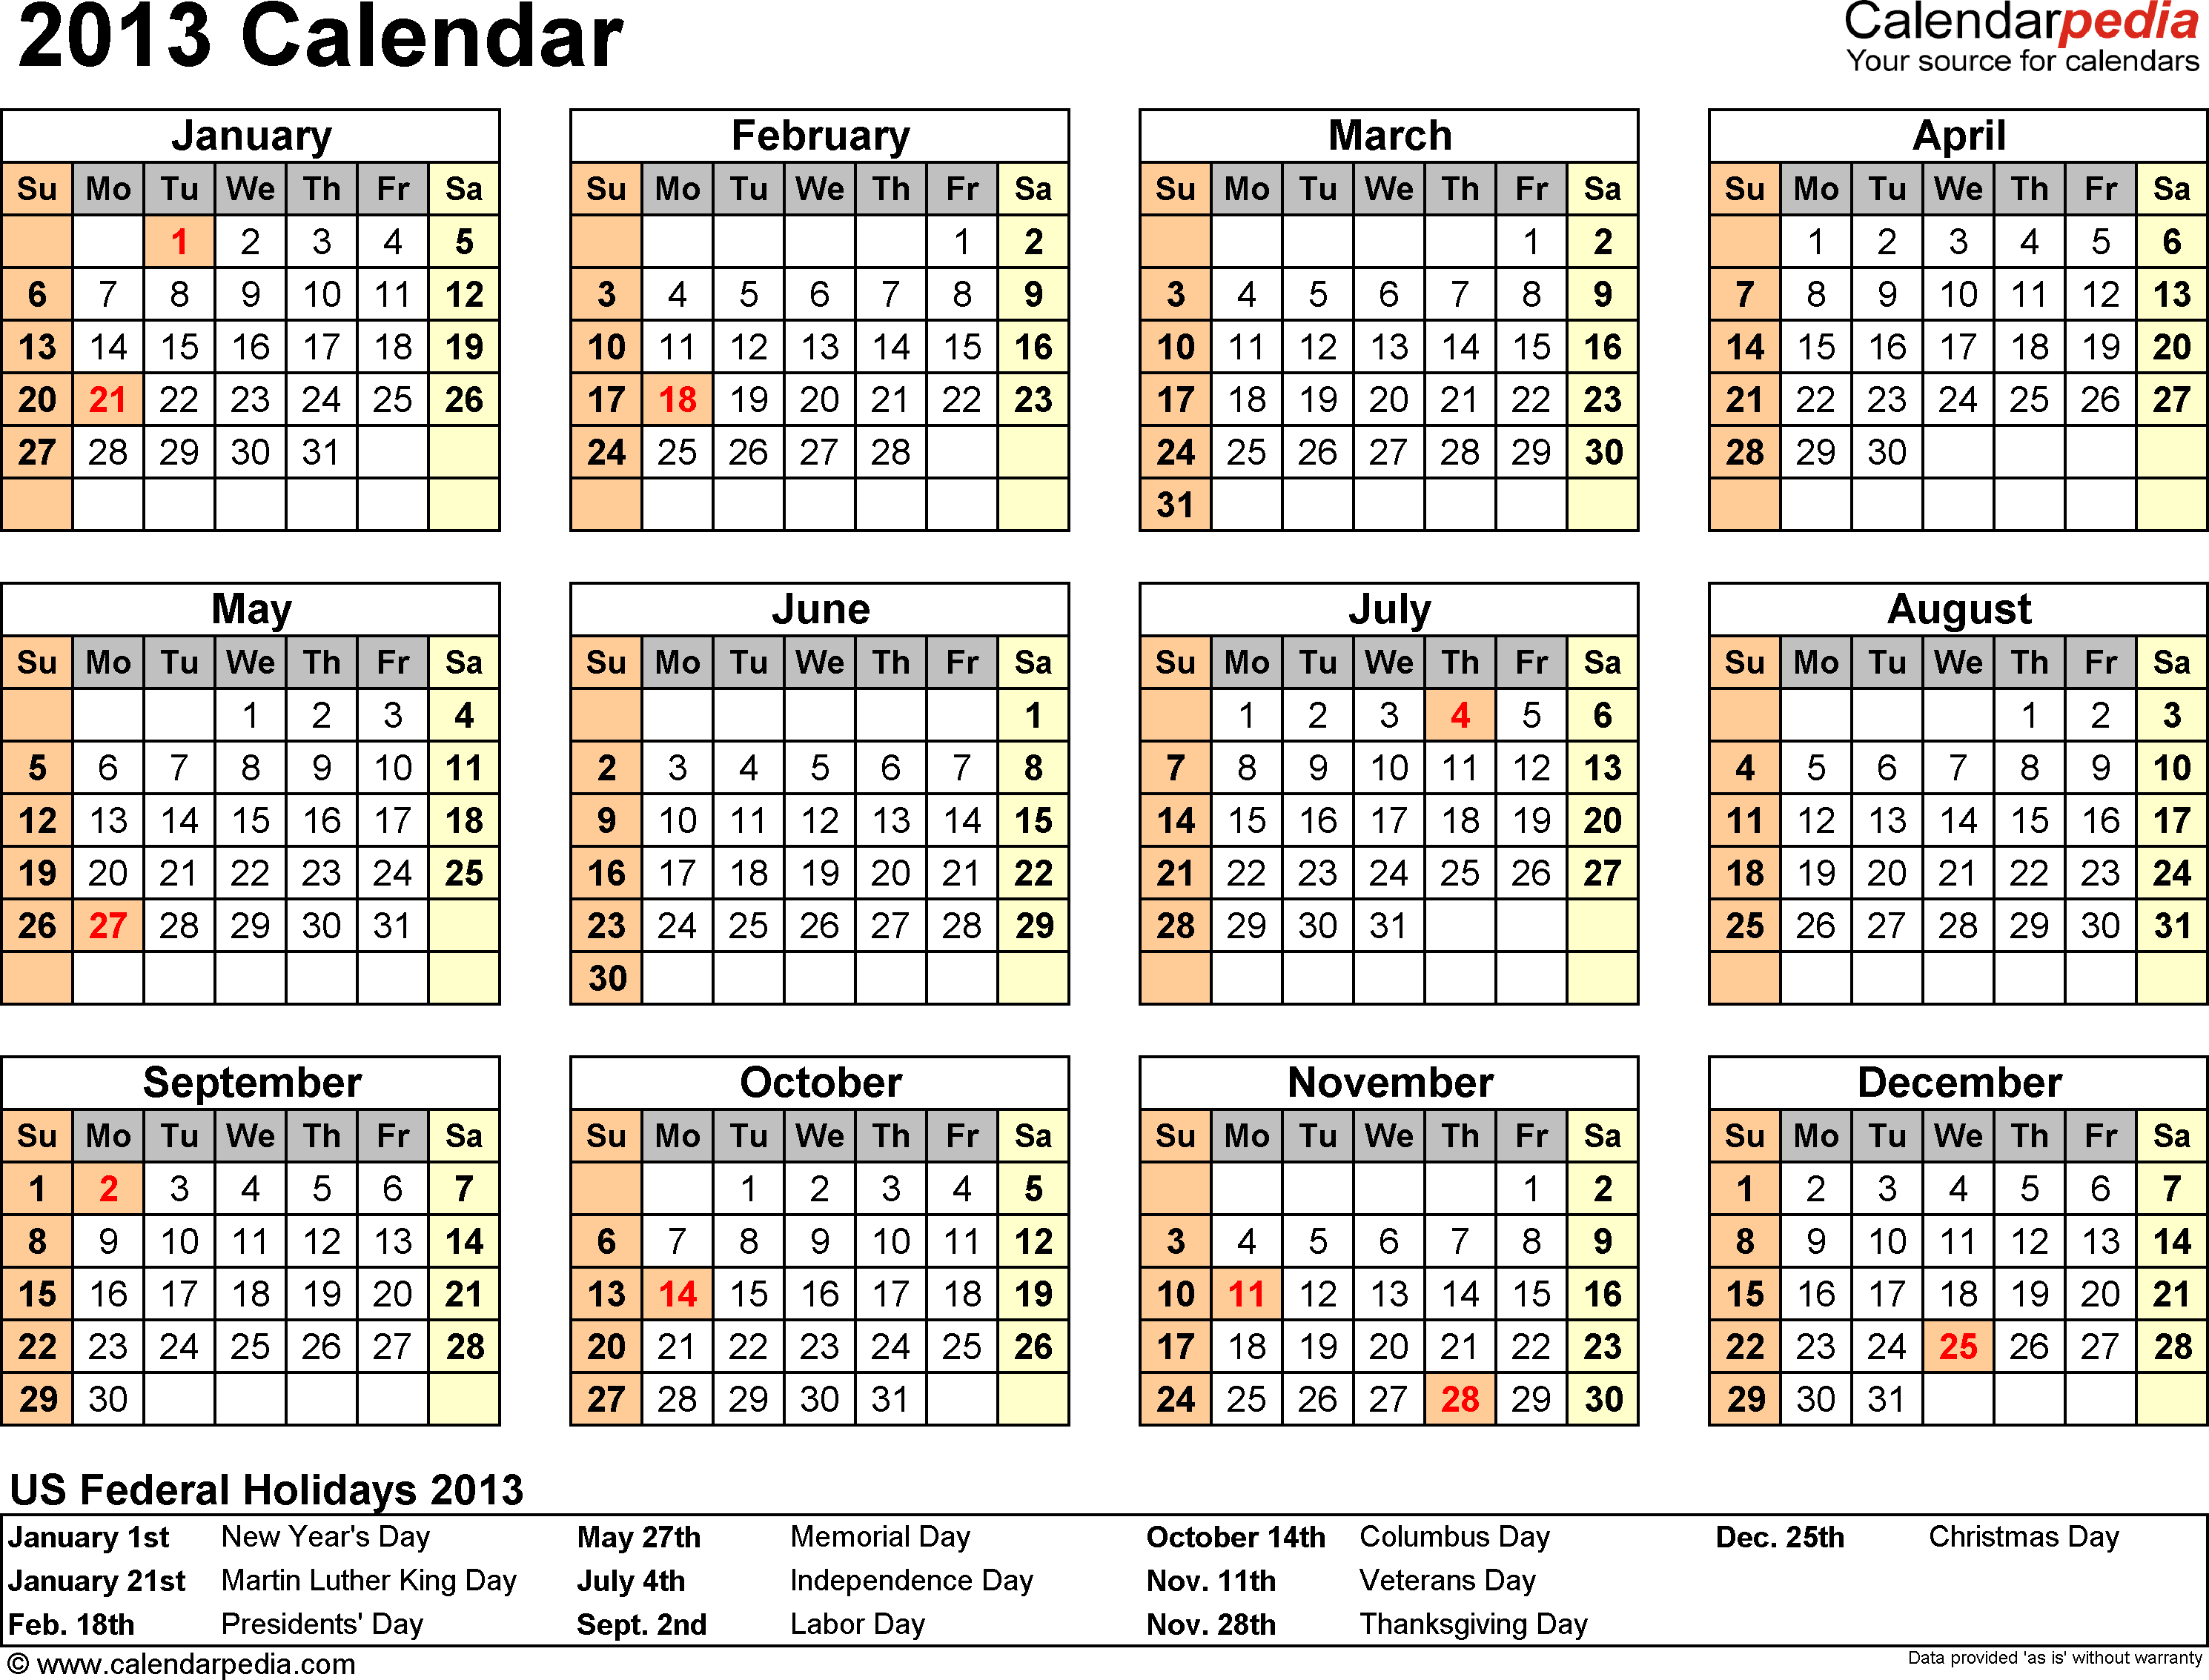 Download Word template for 2013 calendar template 7: year overview, 1 page, with US federal holidays 2013, paper format: US letter